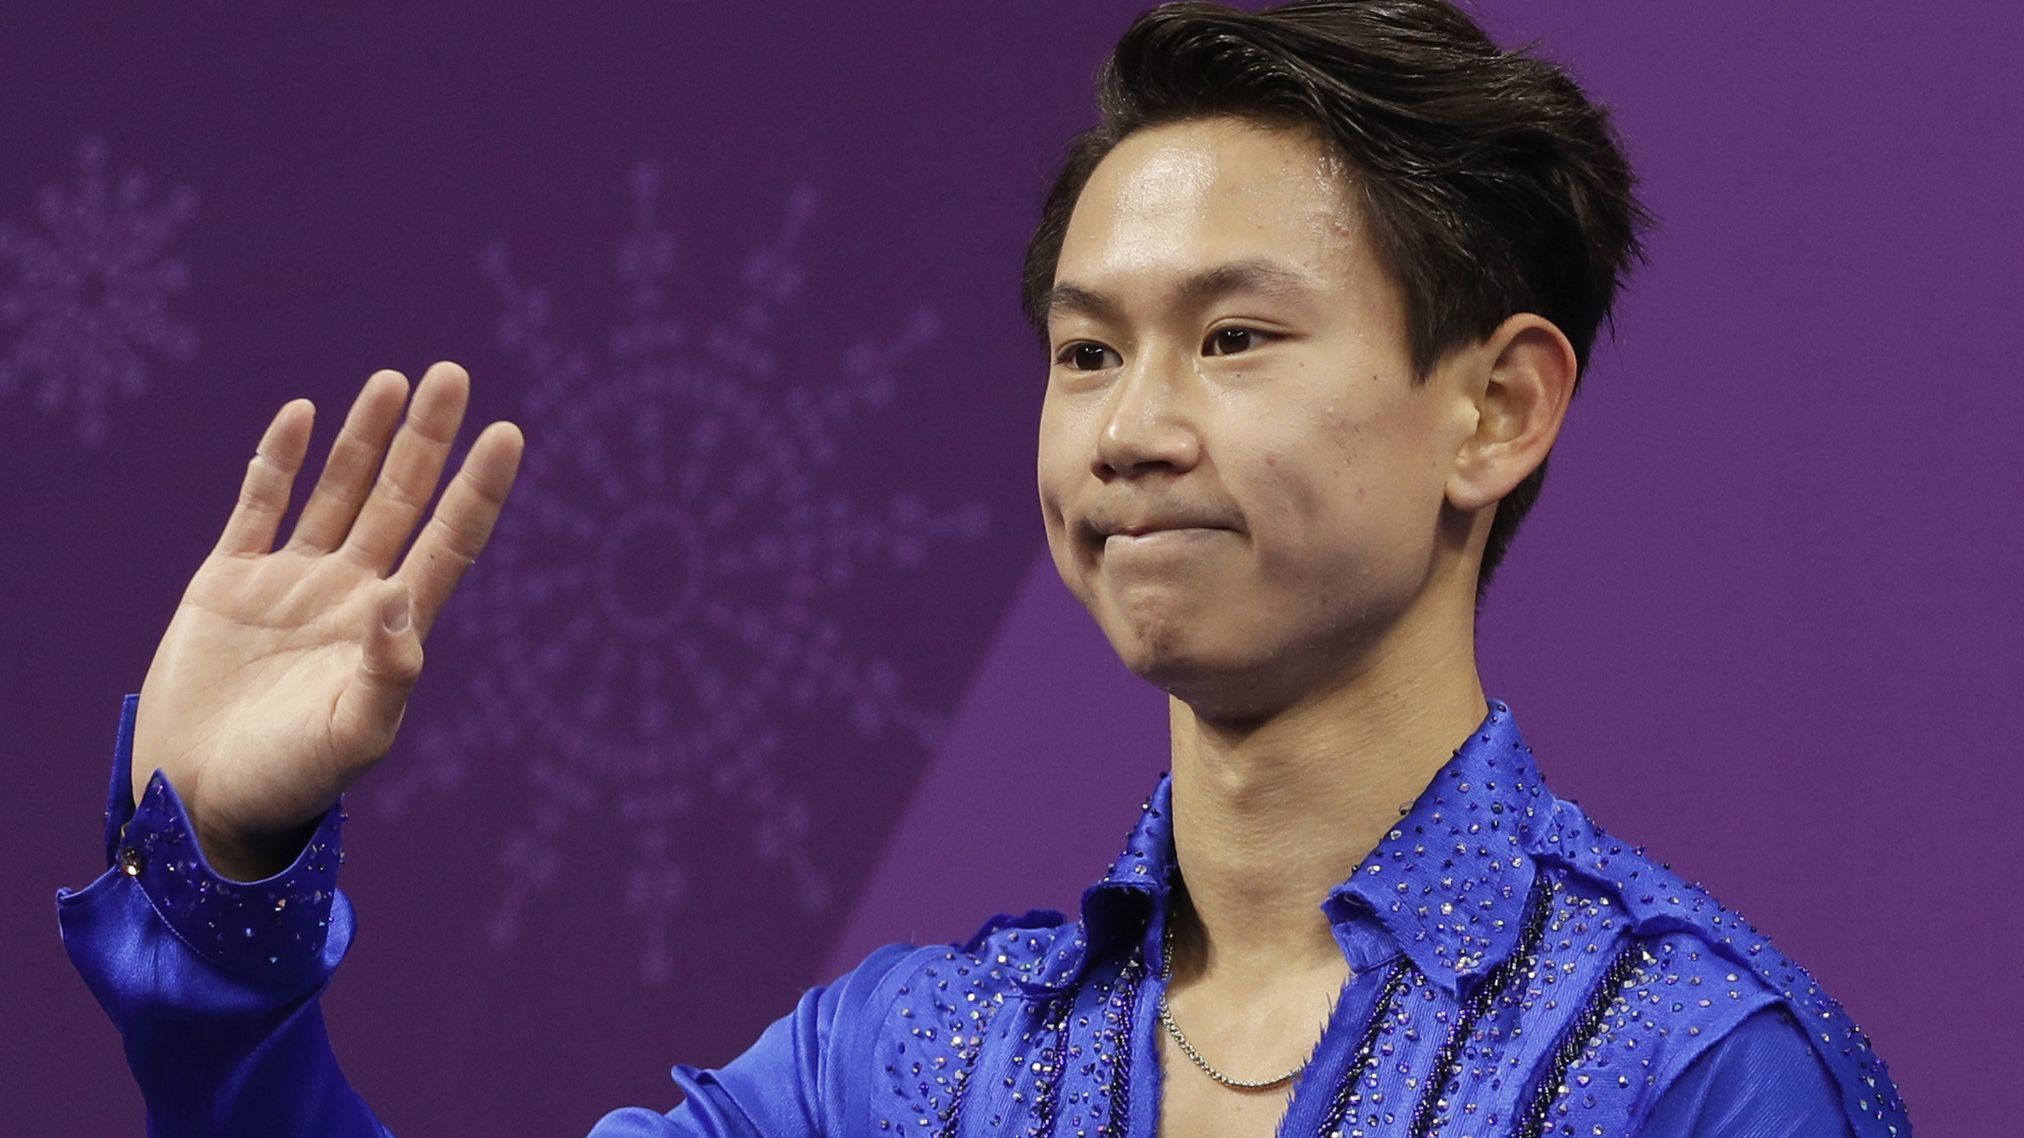 Suspect confesses in killing of Olympic figure skater Denis Ten, Kazakh authorities say